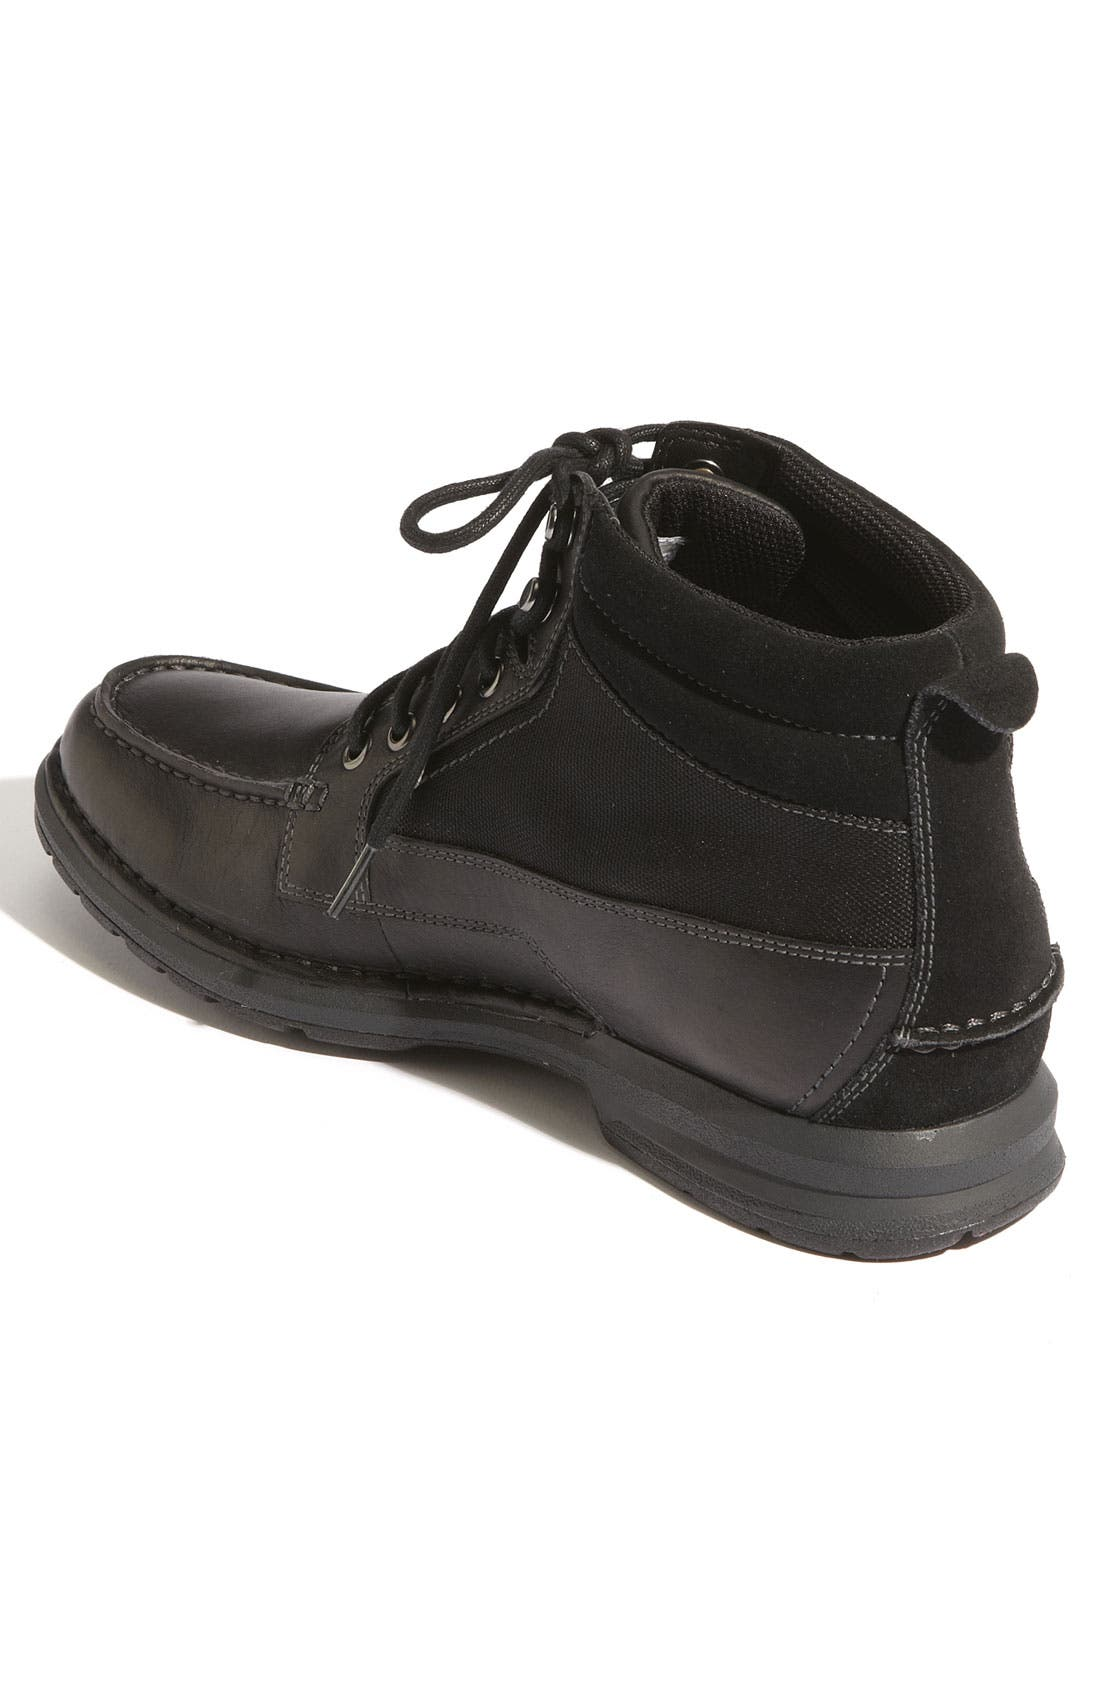 'Concord' Ankle Boot,                             Alternate thumbnail 2, color,                             001